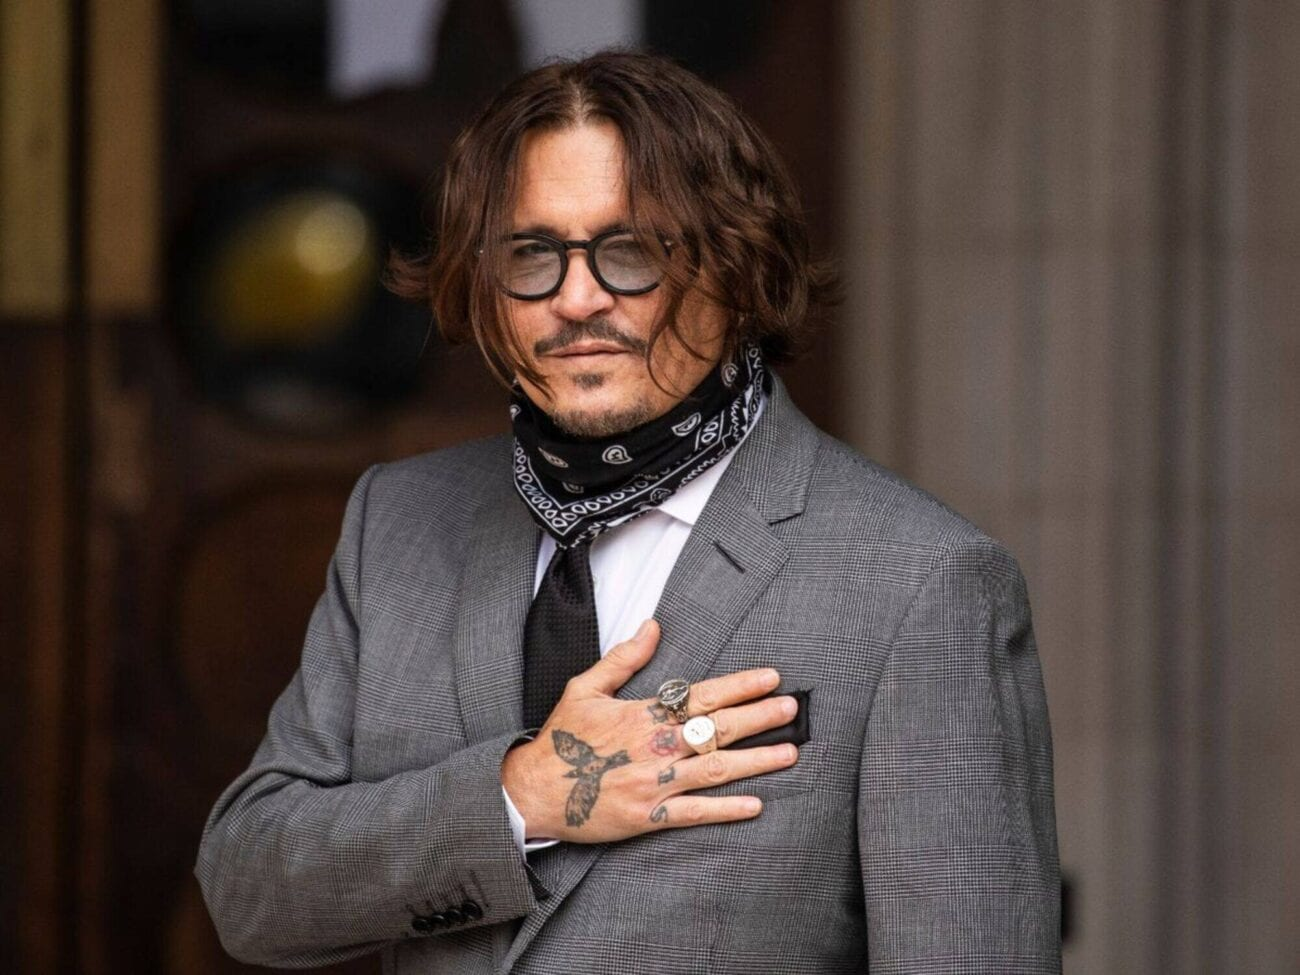 Johnny Depp has lost against ex-wife Amber Heard. But the Hollywood actor isn't giving up anytime soon. Check out his plan for the next battle.